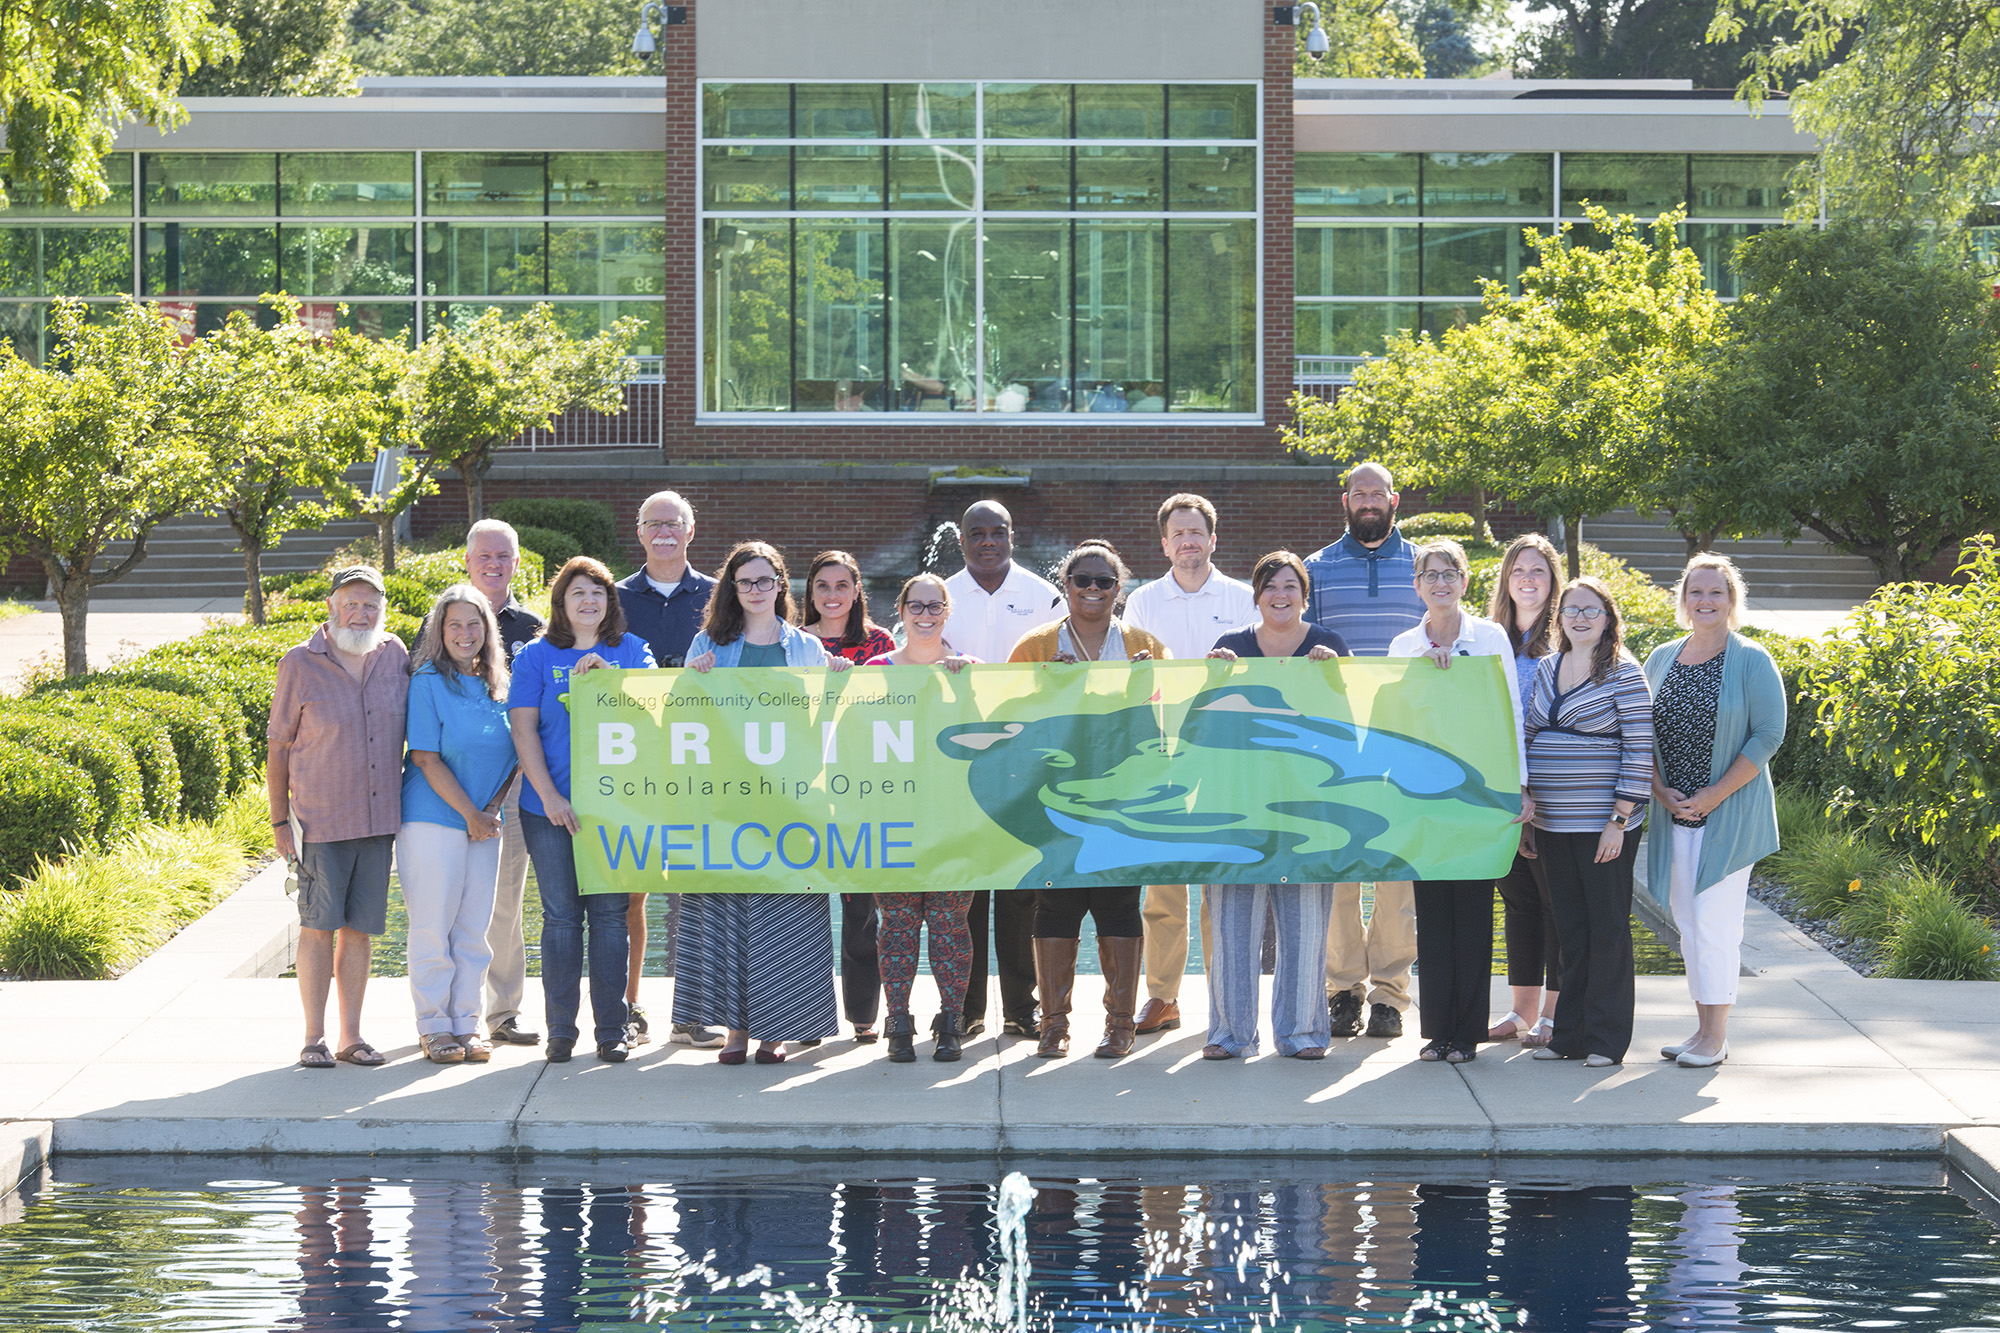 A group photo of KCC staff and Bruin Open volunteers holding a Bruin Scholarship Open banner between the reflecting pools on campus.